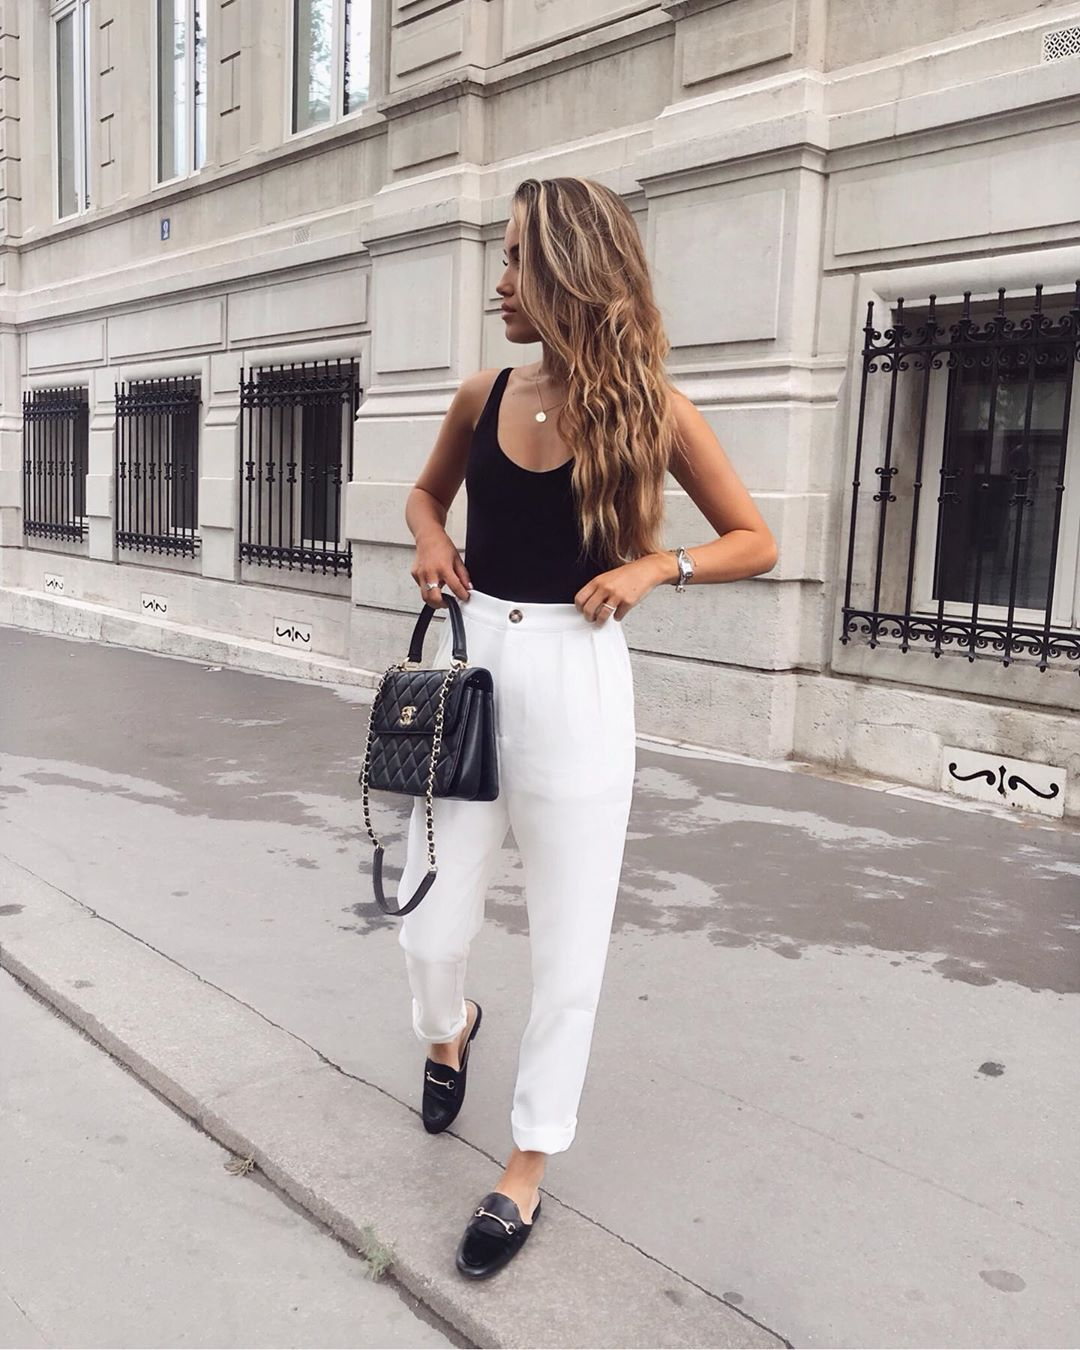 These 3 Closet Essentials Make the Most Stylish Spring Outfit